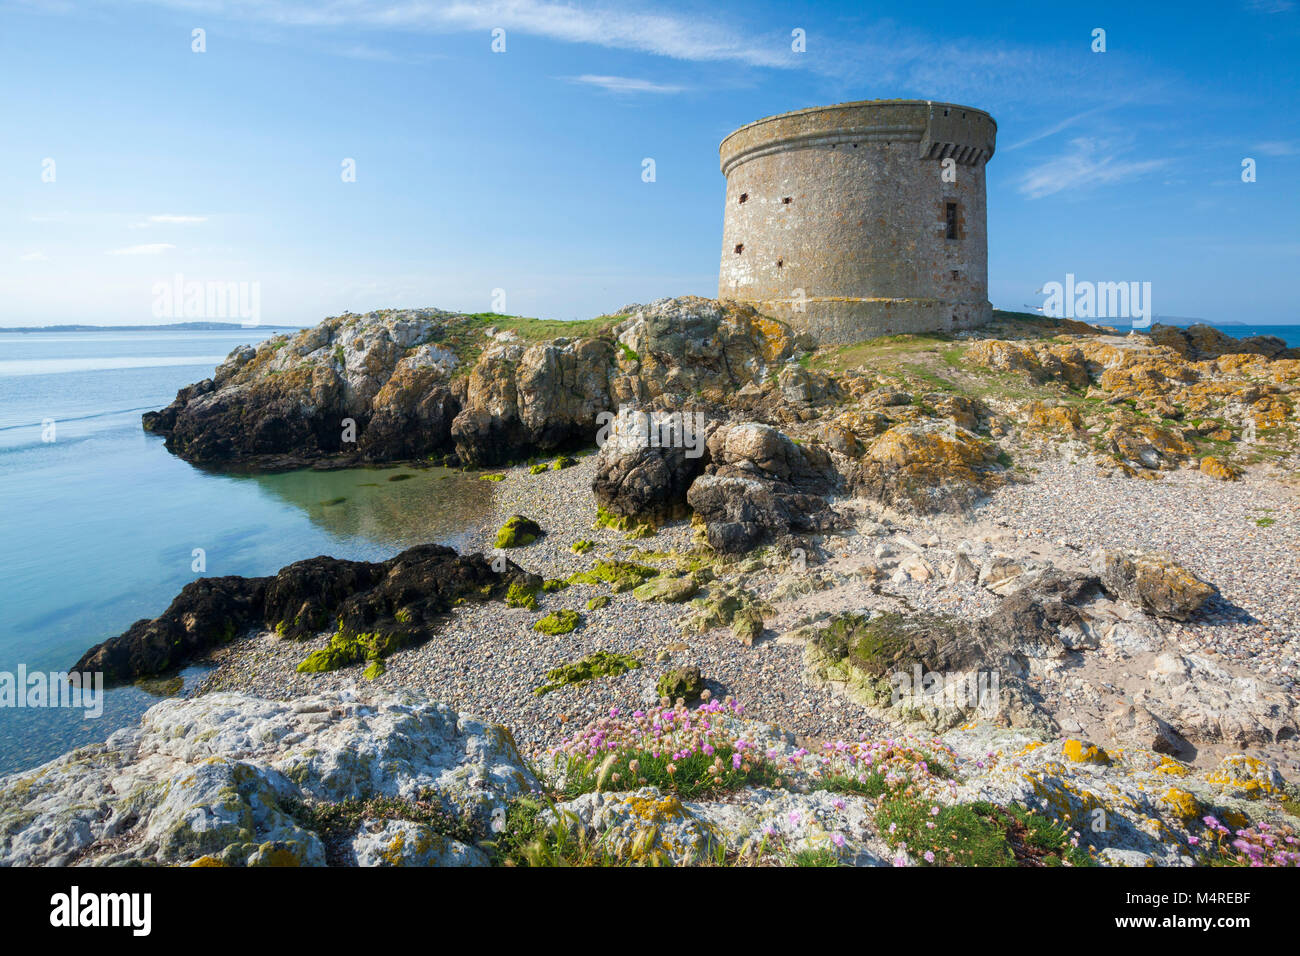 Martello Tower on Ireland's Eye, Howth Head, County Dublin, Ireland. - Stock Image